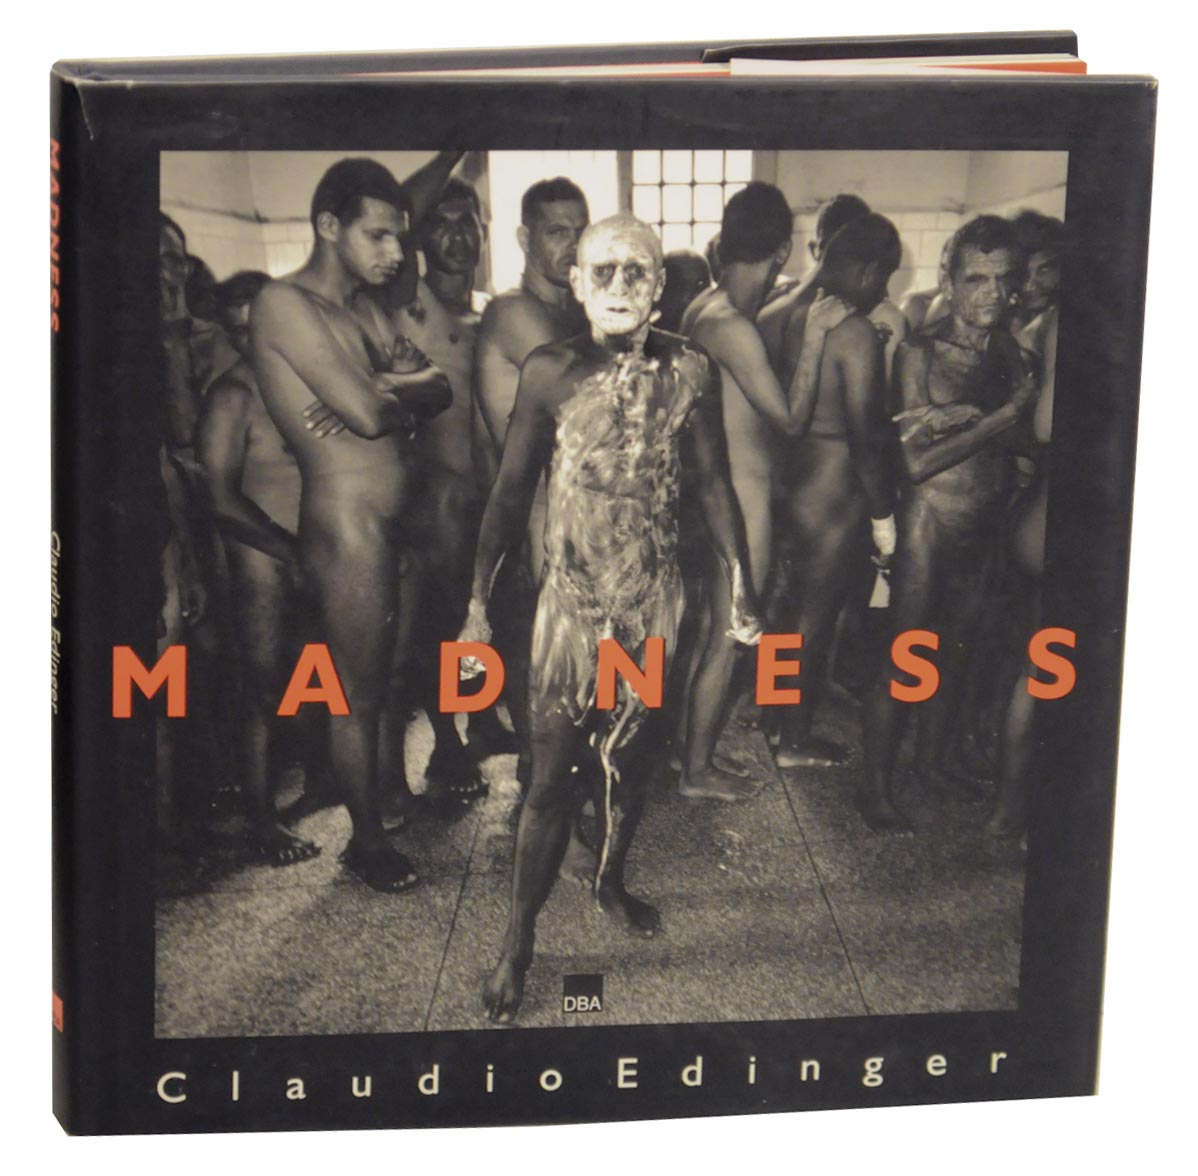 Madness - EDINGER, Claudio